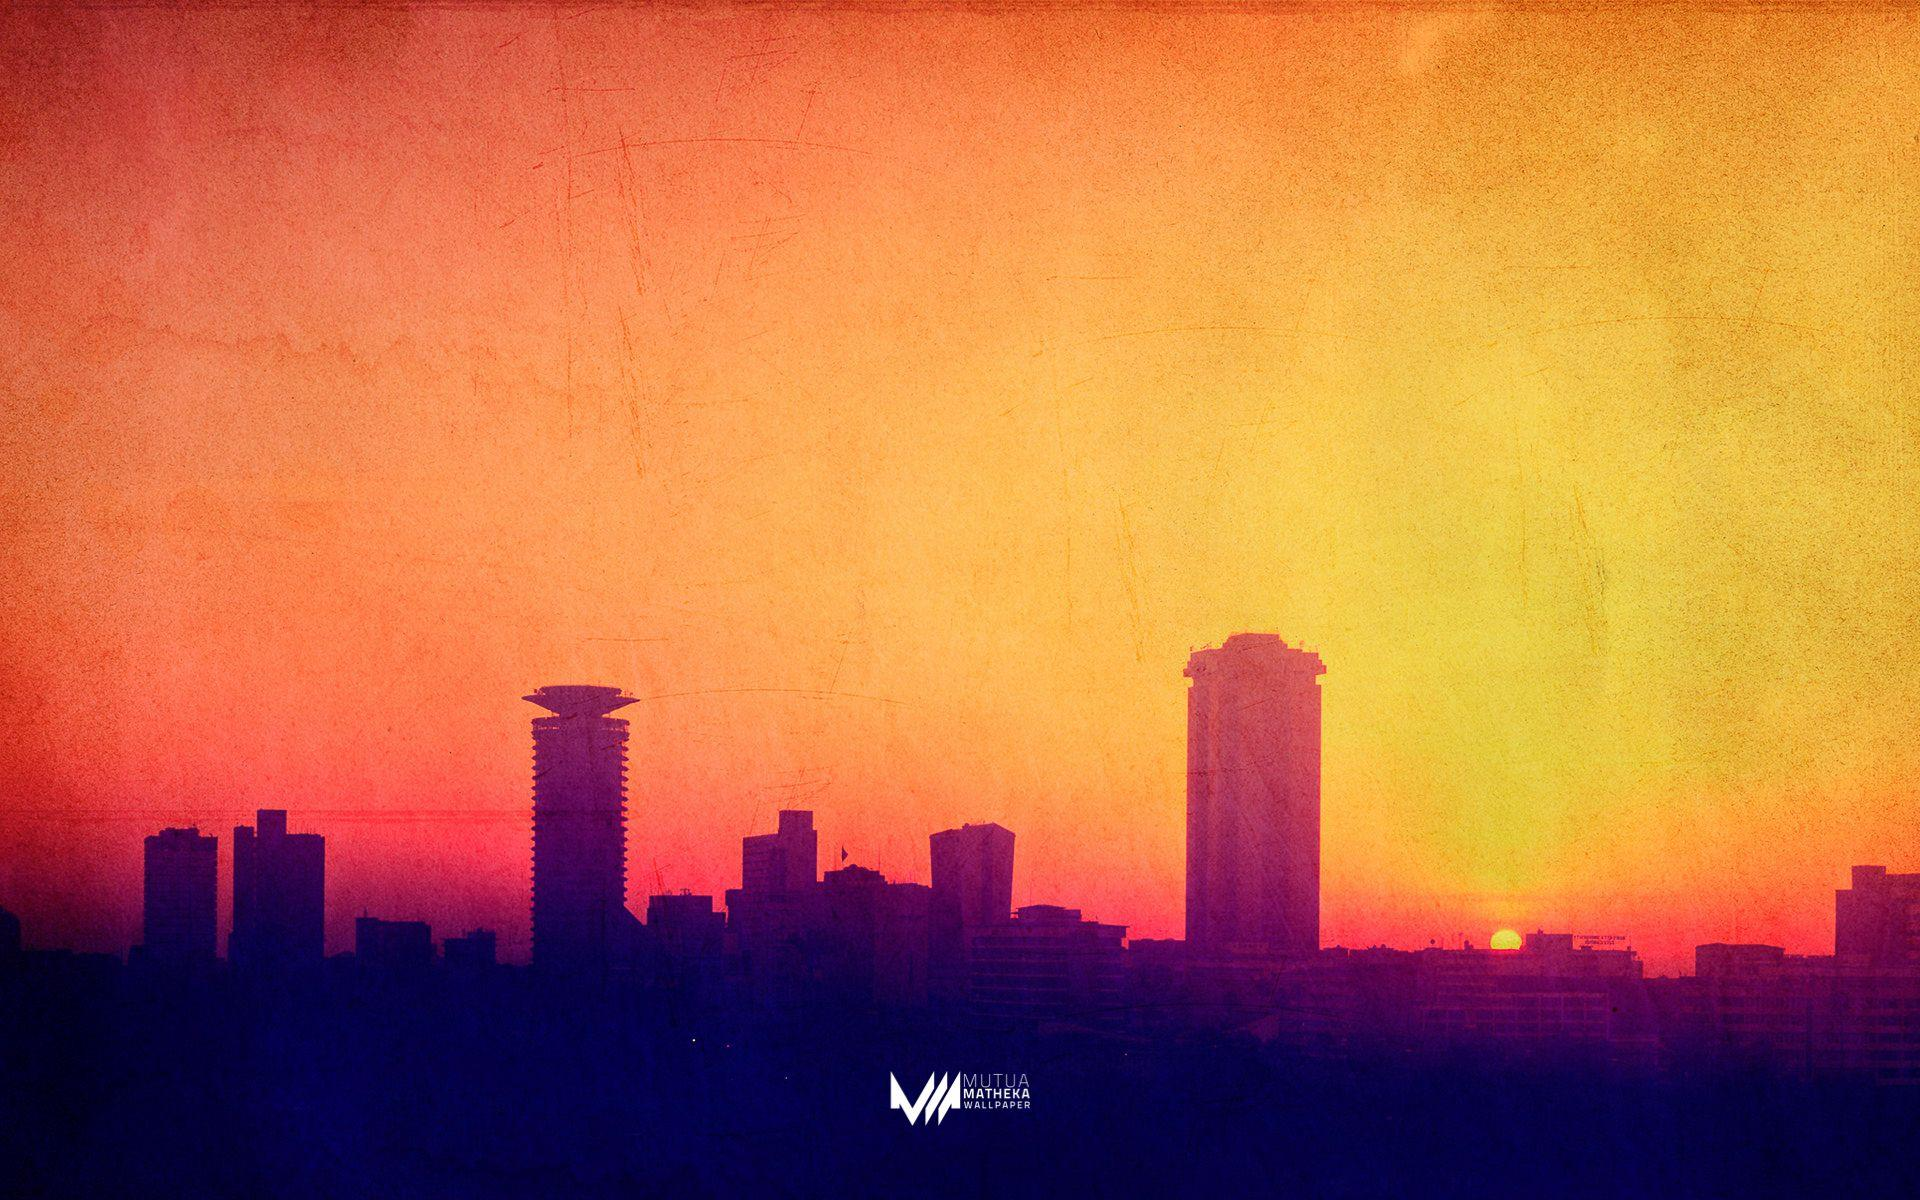 Wallpaper Monday [73] – It dawned on me in Nairobi |